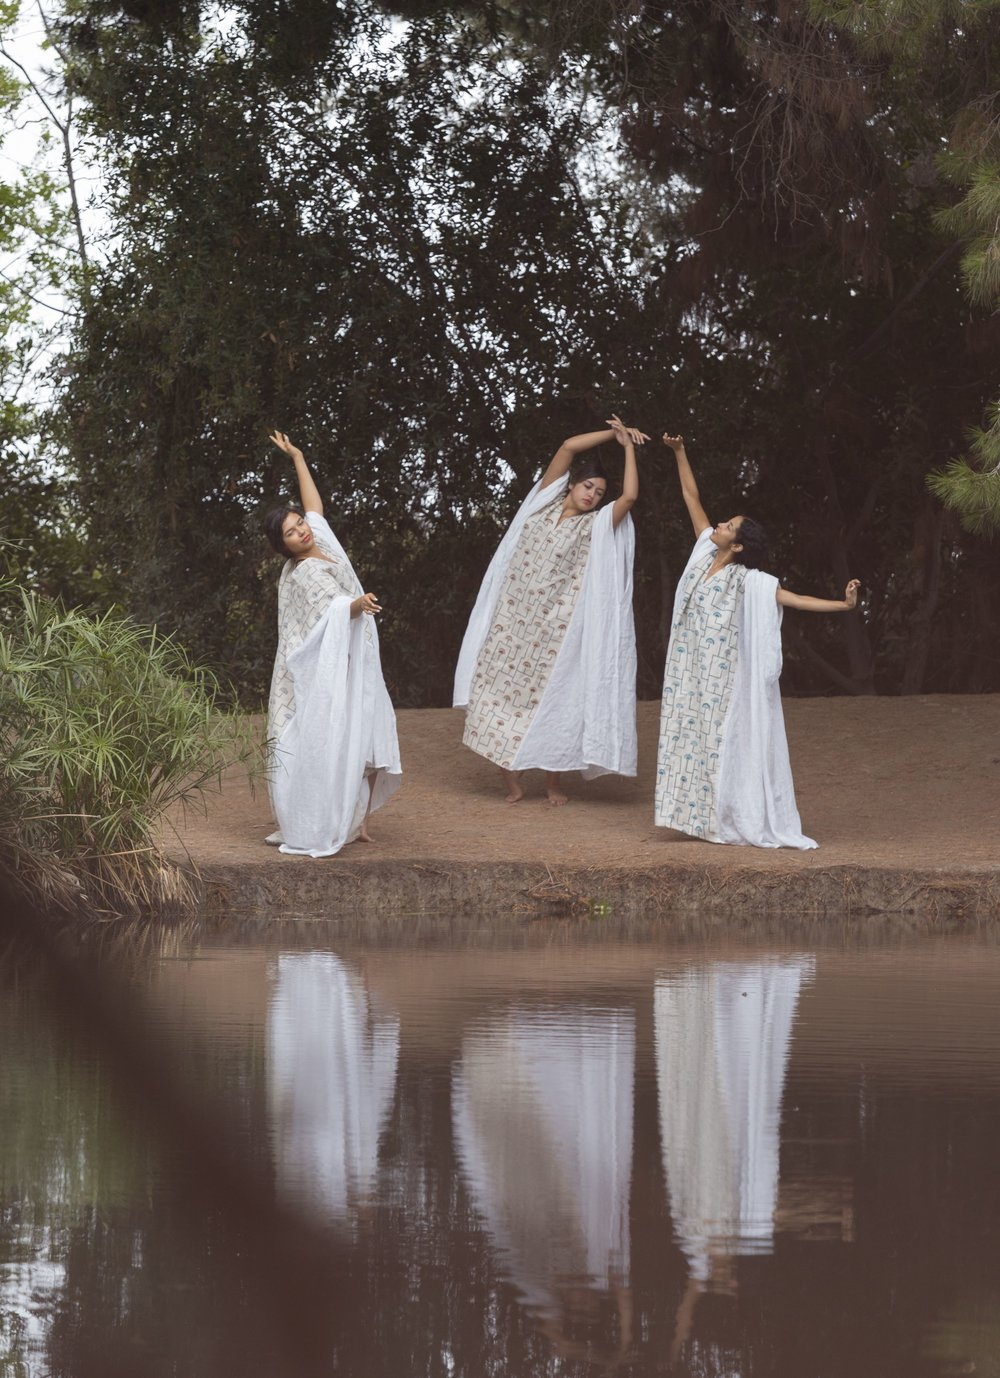 - Dressed in column-like caftans, the dancers evoke the trees behind them, moving slowly with the languid rhythm of nature.The caftan's architectural form reinforces the pattern's geometry, while the fluid dancers' movements mimic the loose brushstrokes that grow and fan from the cloth.